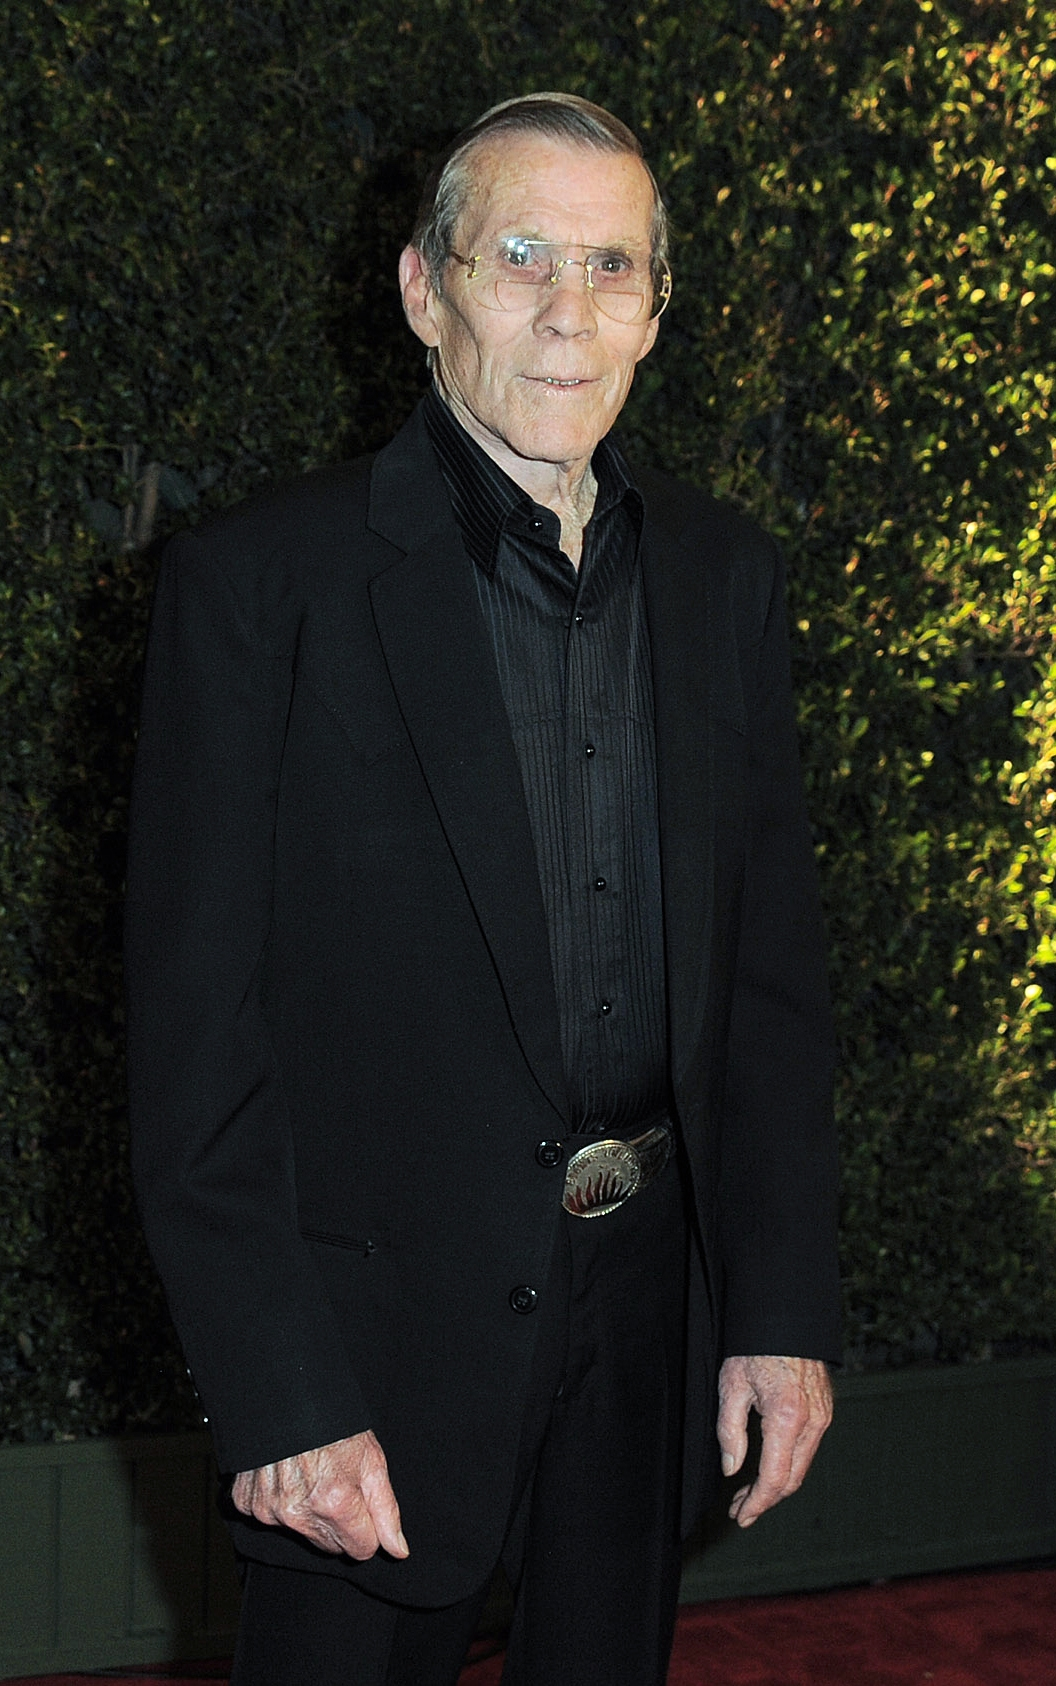 """FILE – In this Dec. 1, 2012 file photo, Hal Needham arrives at the 4th Annual Governors Awards at Hollywood and Highland Center's Ray Dolby Ballroom in Los Angeles. Needham, a top Hollywood stuntman who turned to directing rousing action films including """"Smokey and the Bandit"""" and """"The Cannonball Run,"""" died Friday, Oct. 25, 2013, his business managers told the Los Angeles Times. He was 82. (Photo by Jordan Strauss/Invision/AP, File)"""